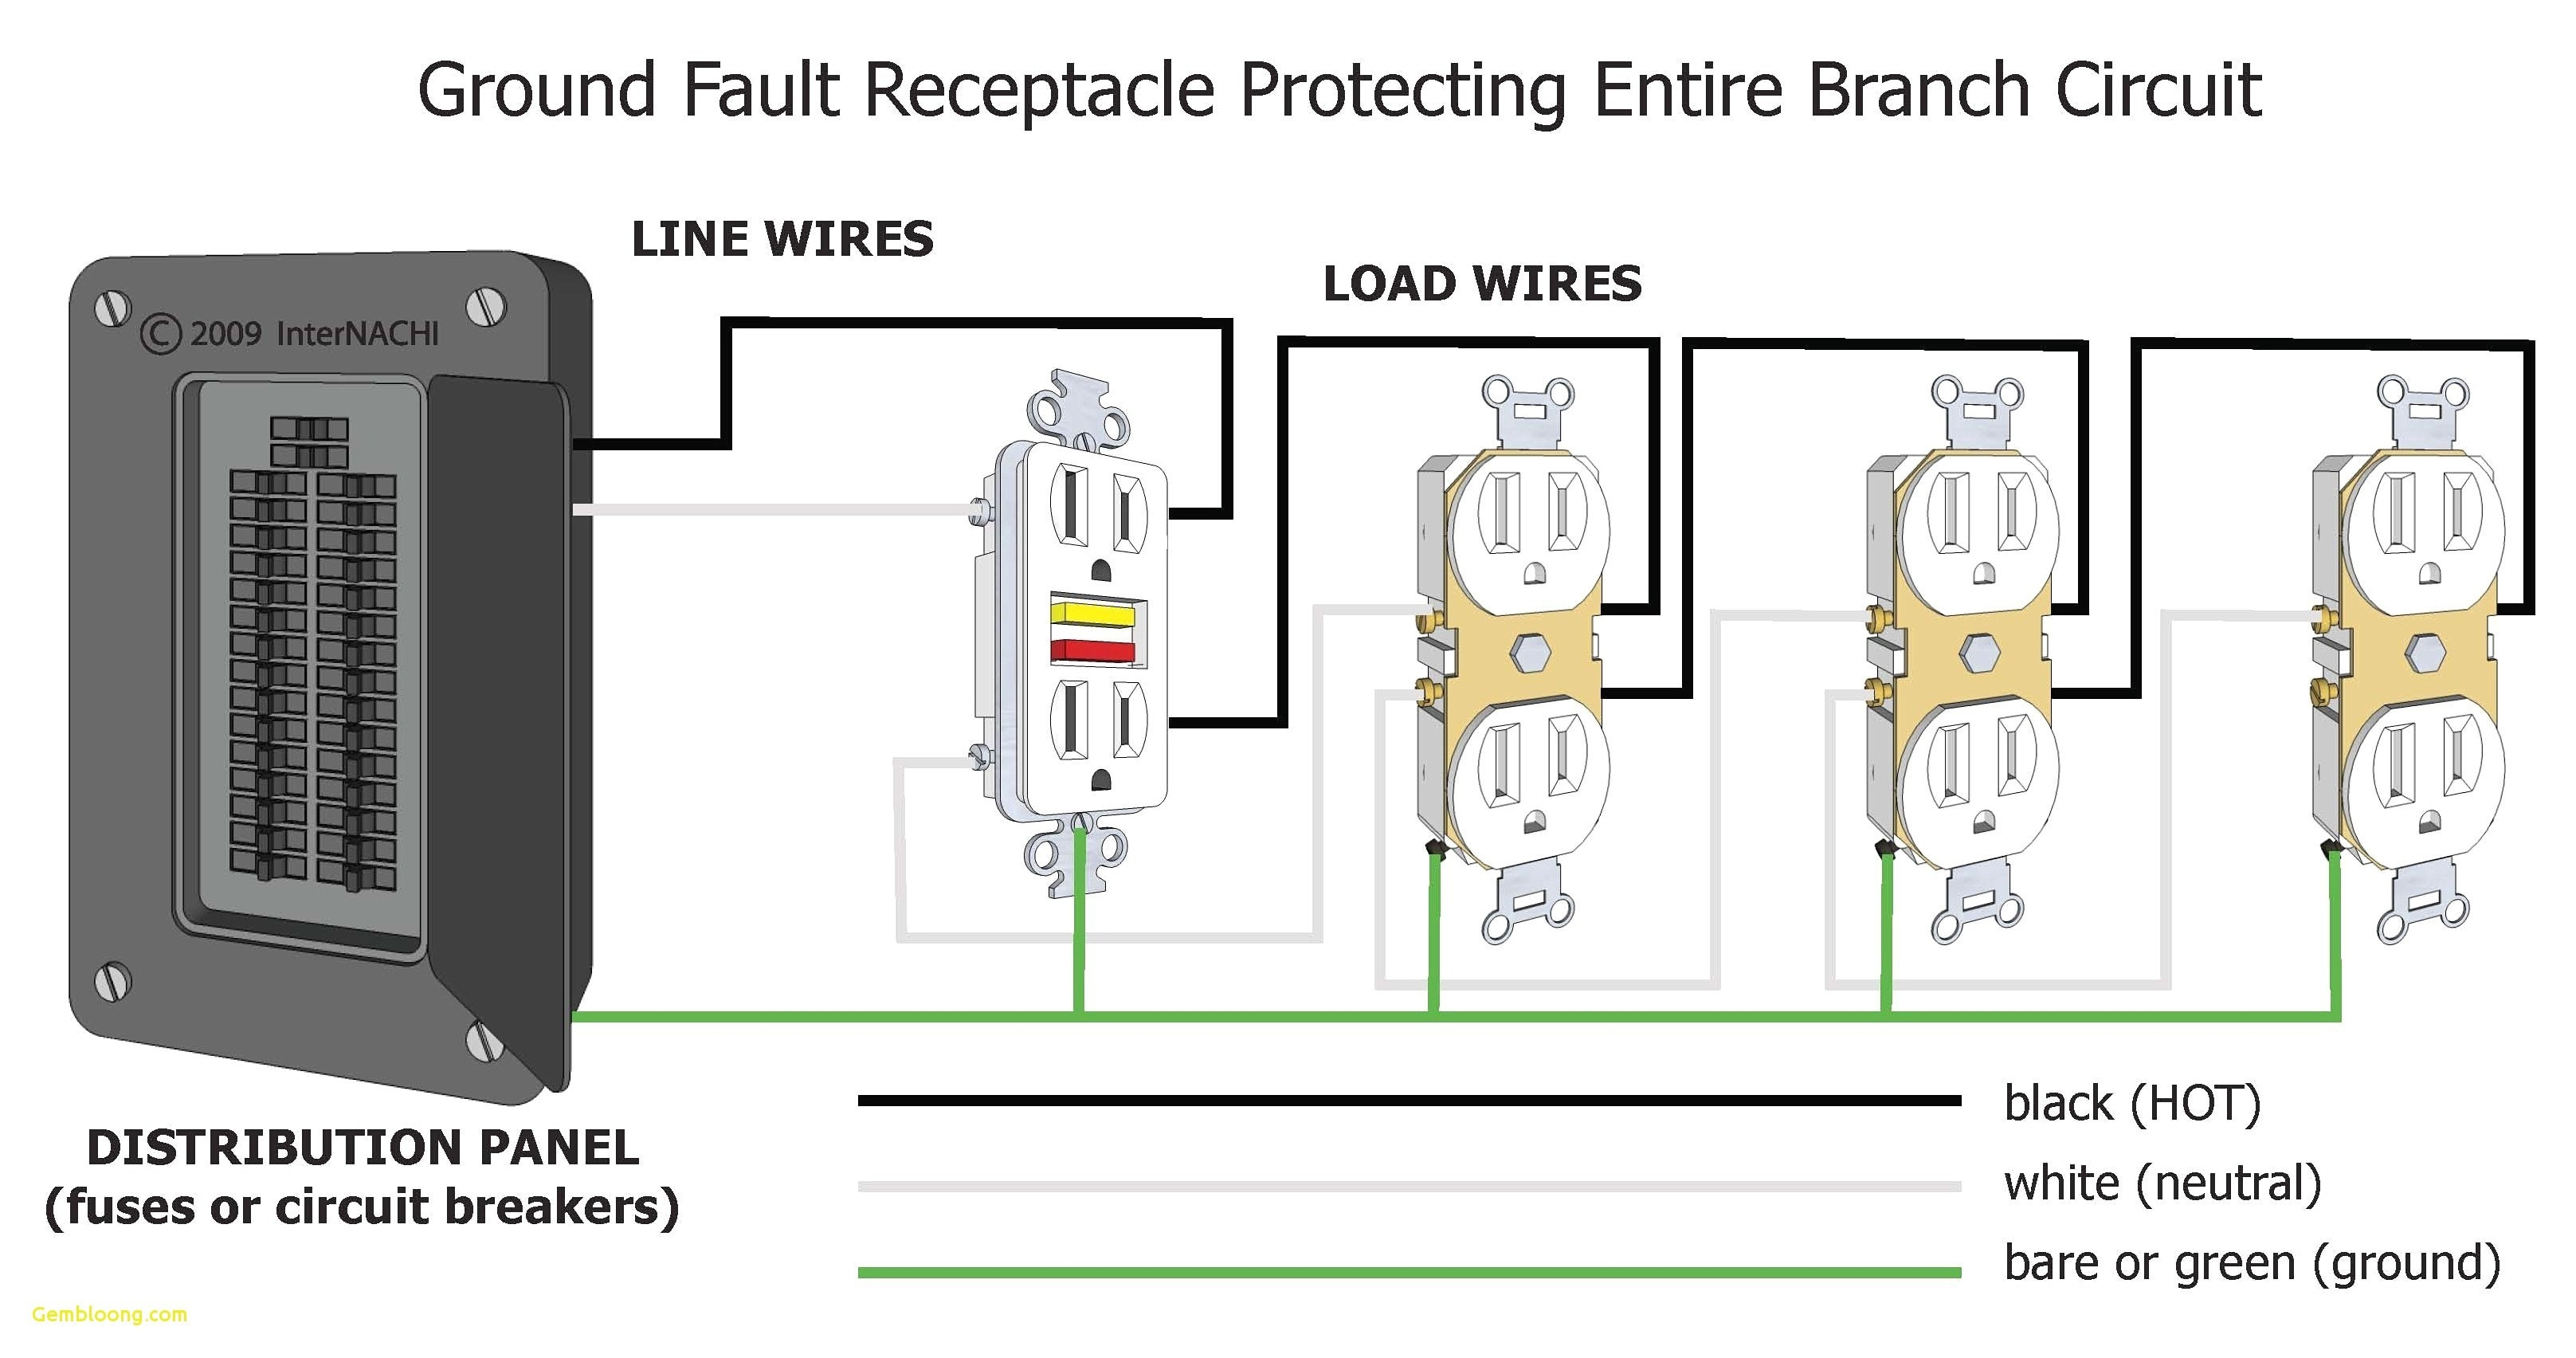 gfci receptacle wiring diagram Collection-Wiring Diagram for A Switch Controlled Gfci Receptacle Inspirationa Wiring Diagram for A Gfci Outlet Refrence 6-q